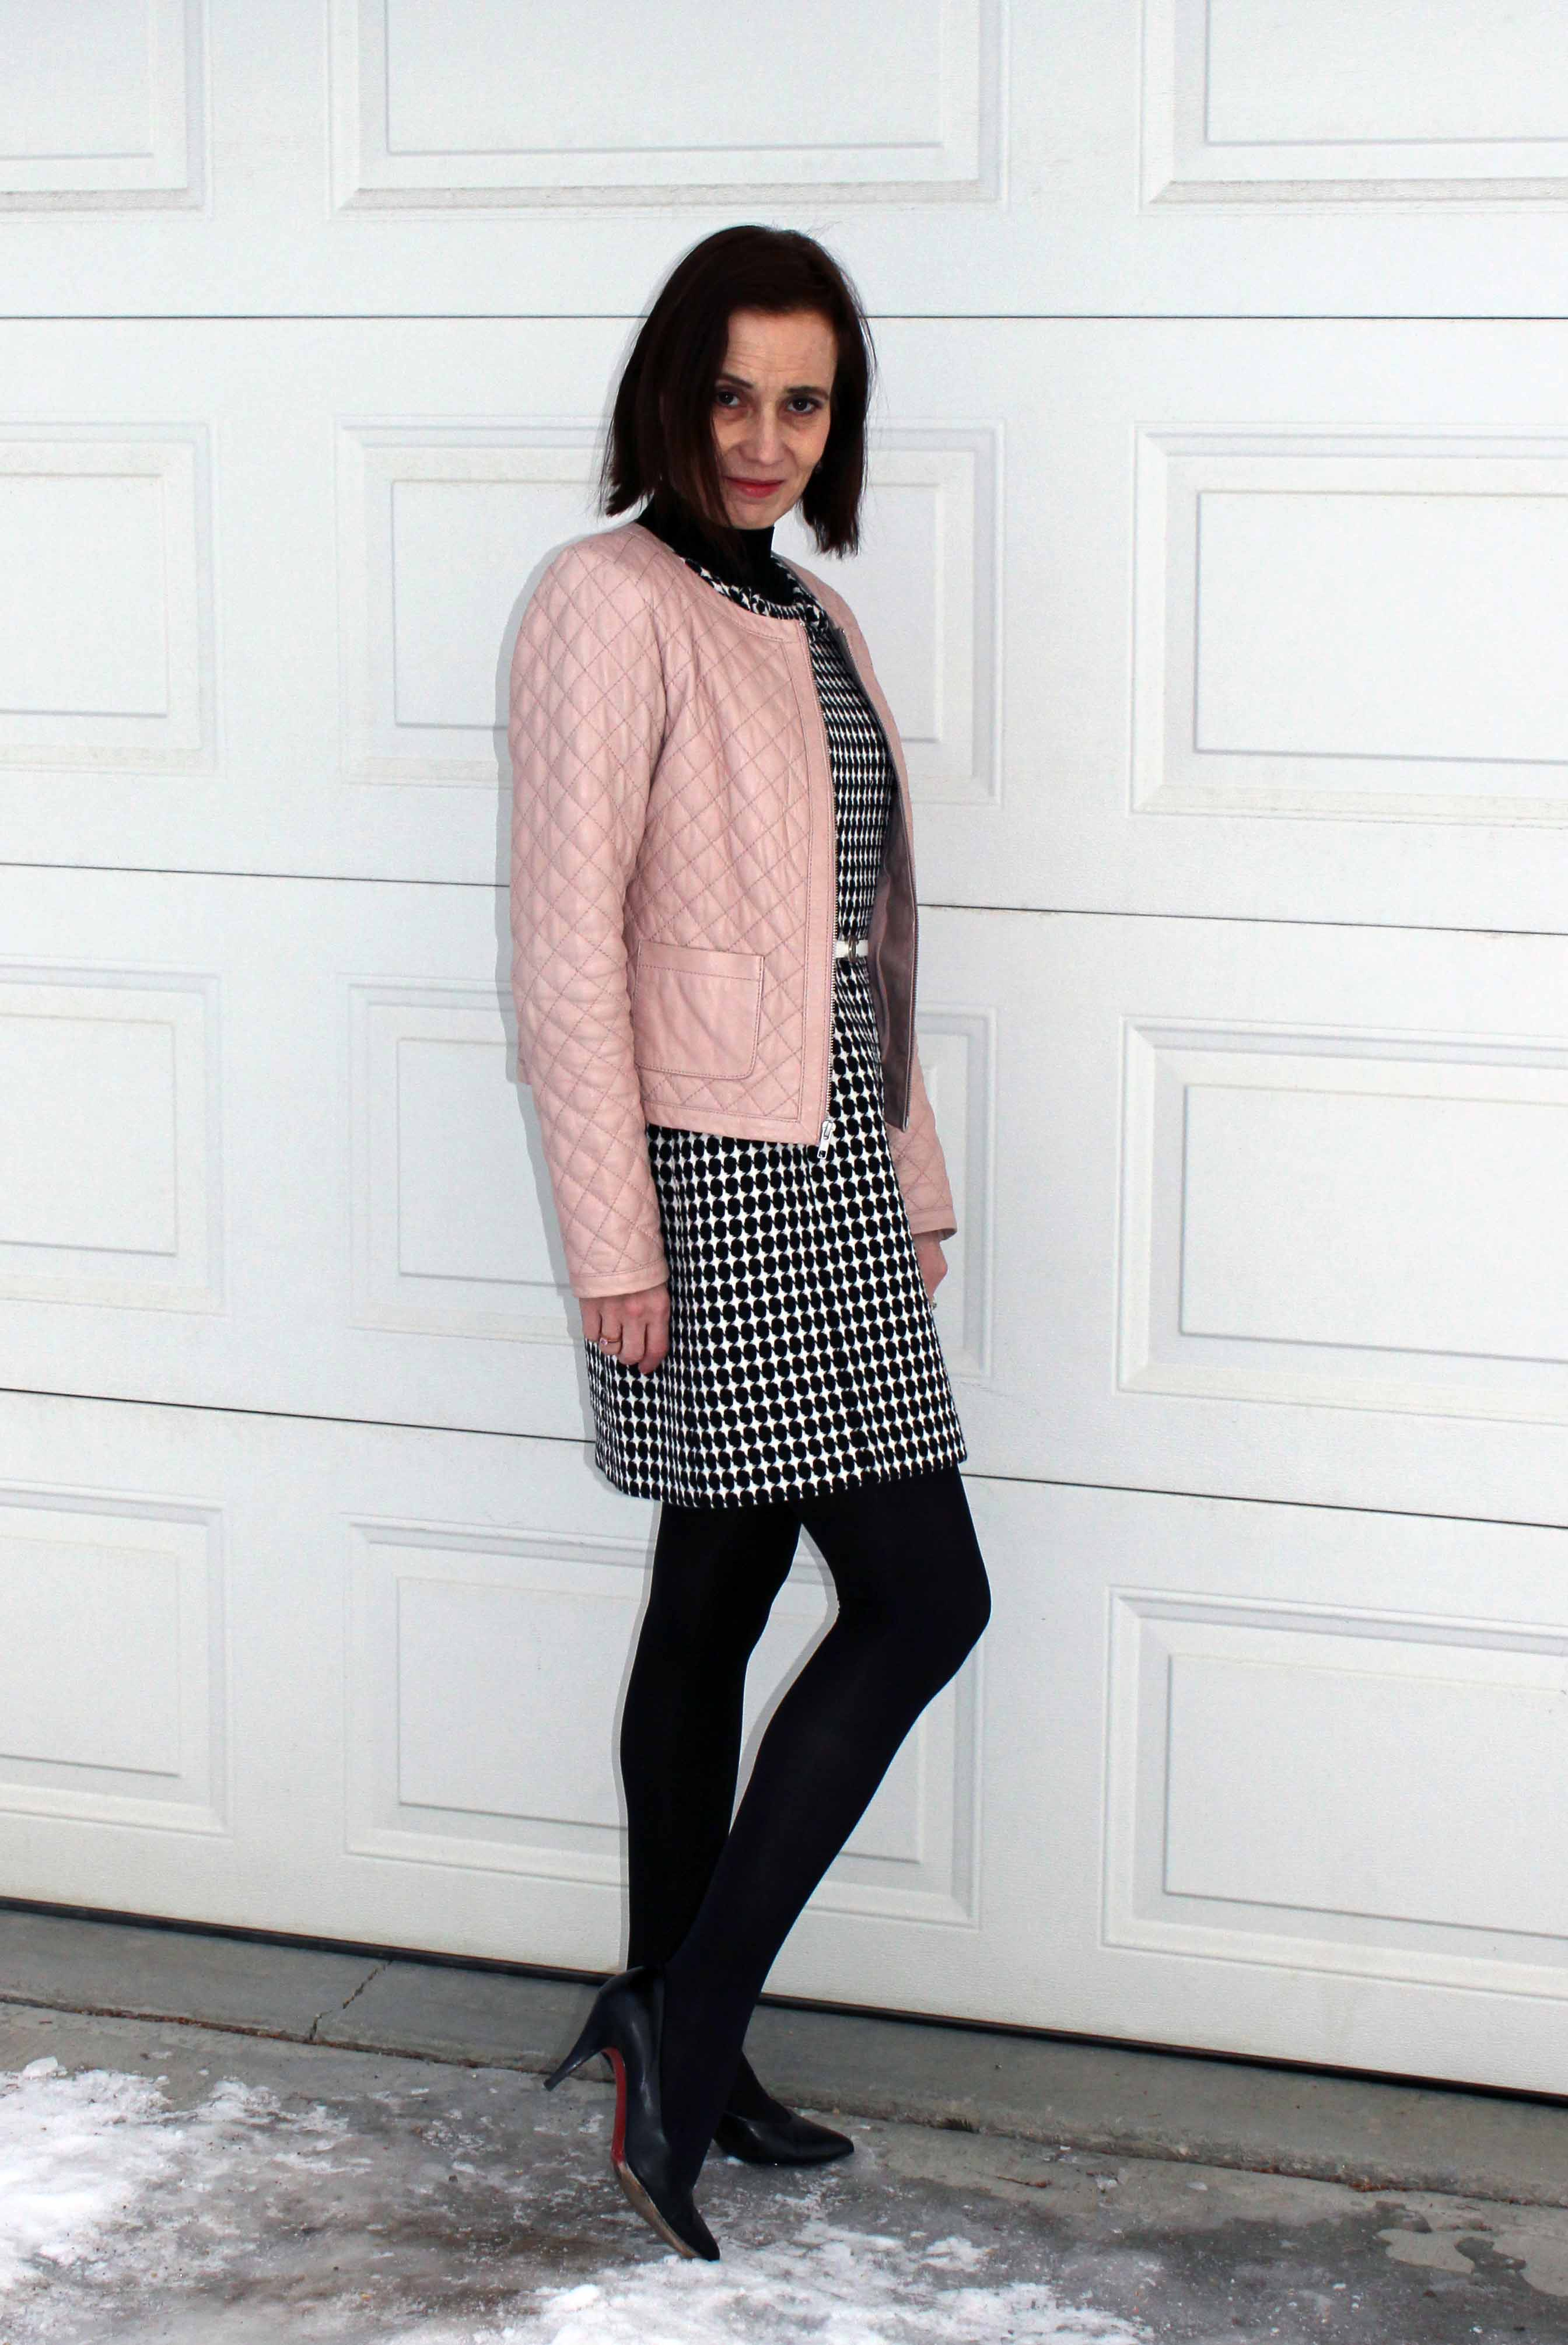 fashion blogger in desaturated outfit with blush jacket, houndstooth sheath dress